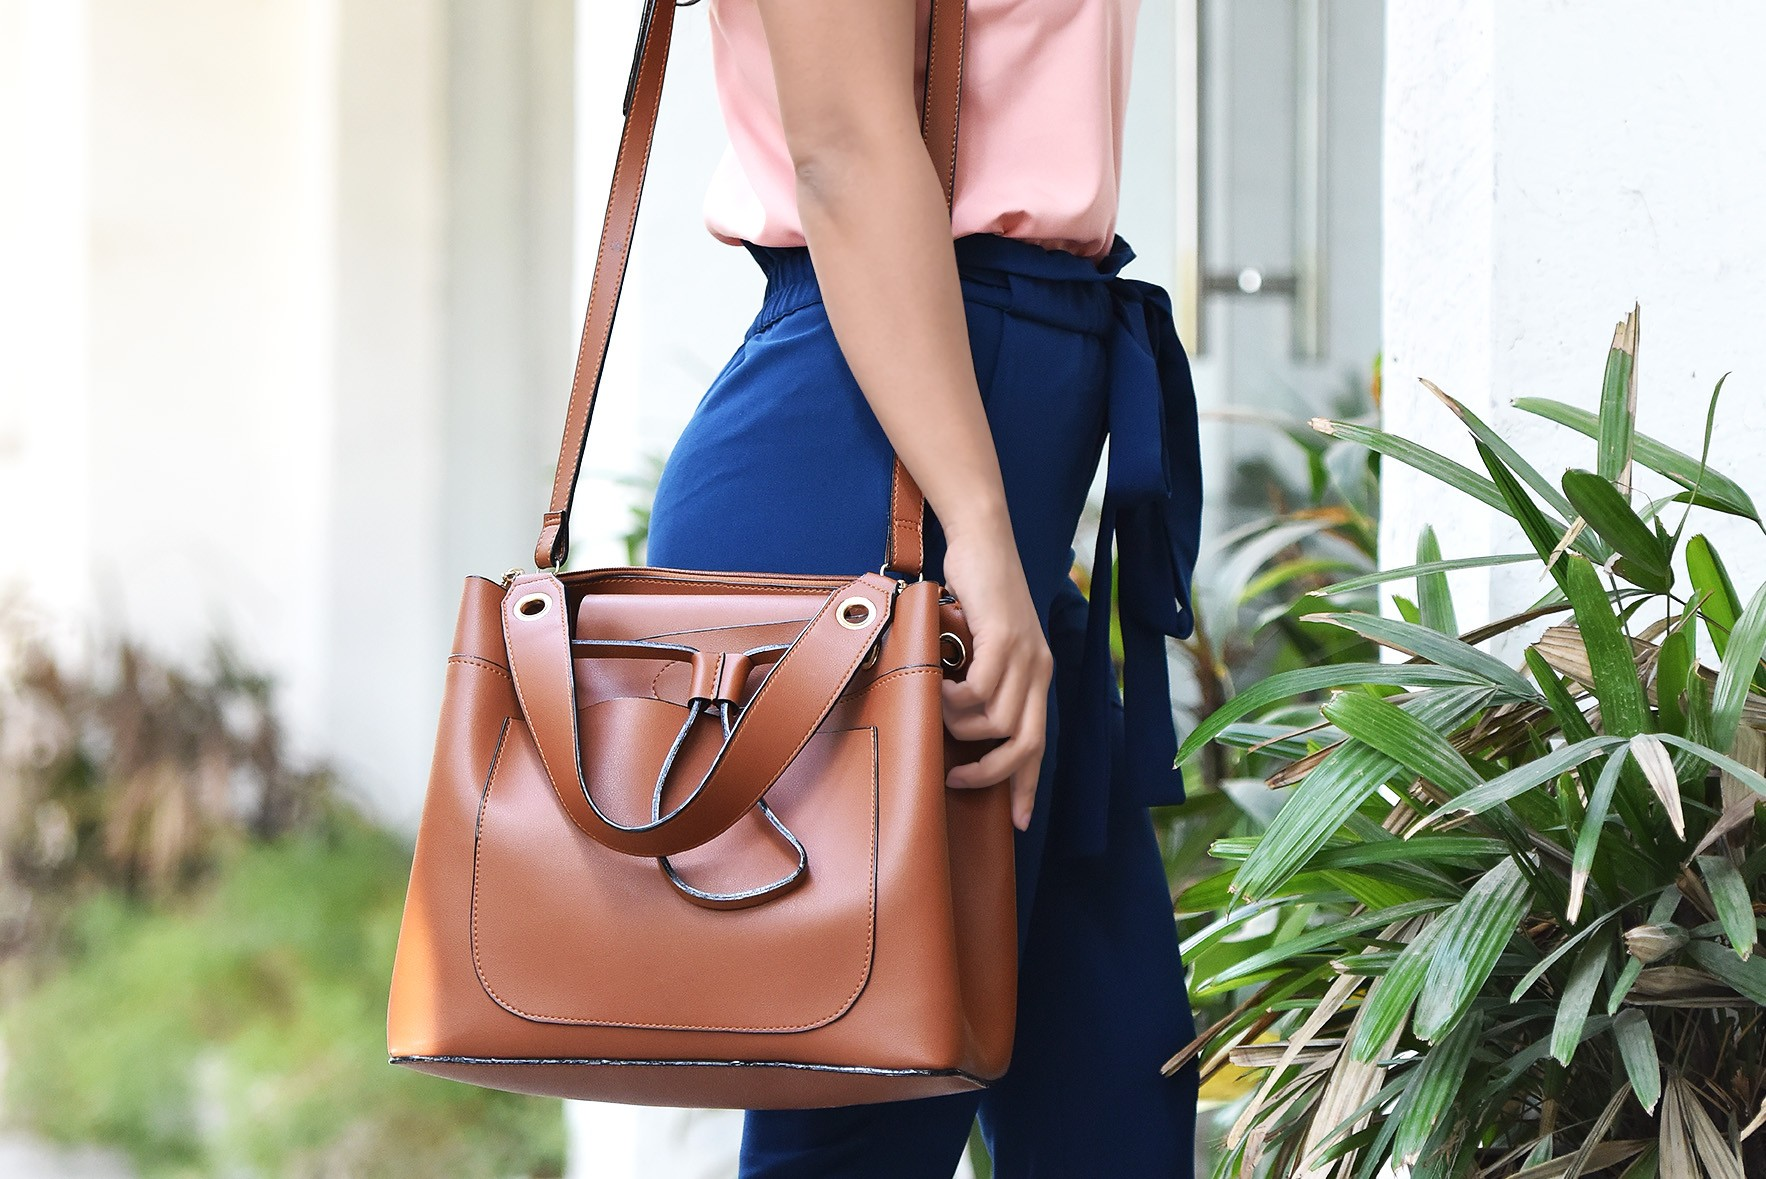 Make a statement tan handbag